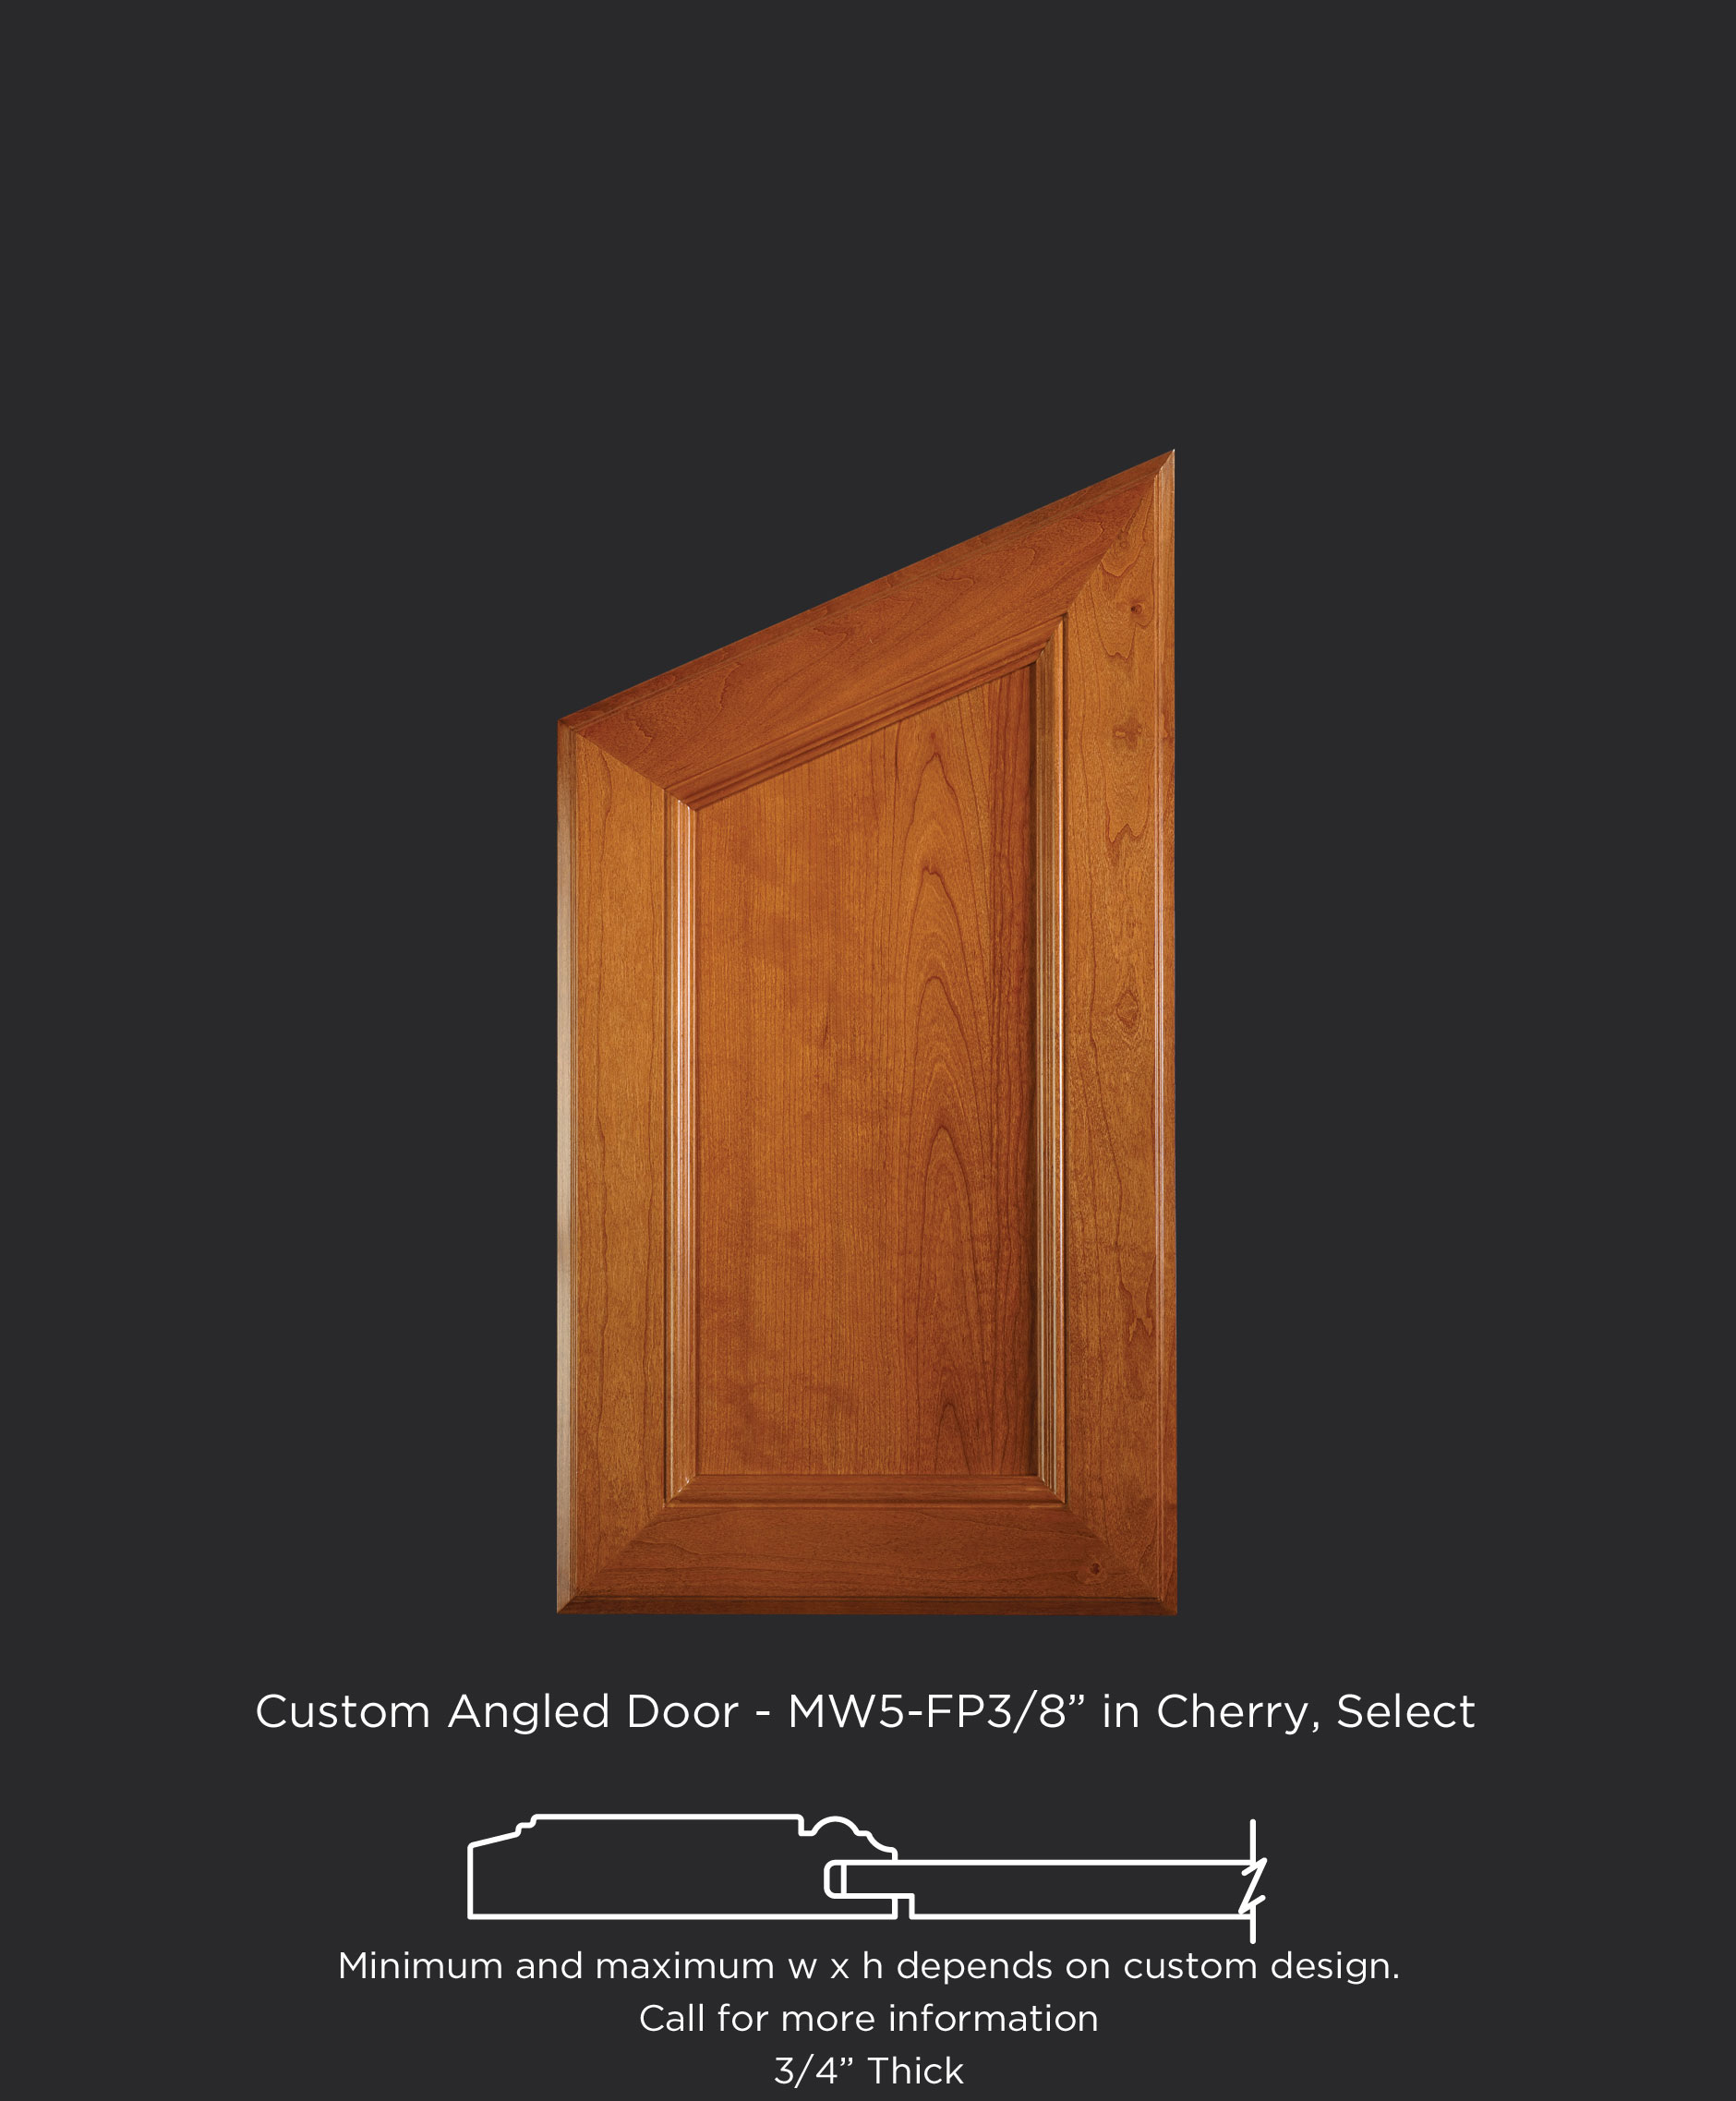 Angled Top Cabinet Door - TaylorCraft Cabinet Door Company